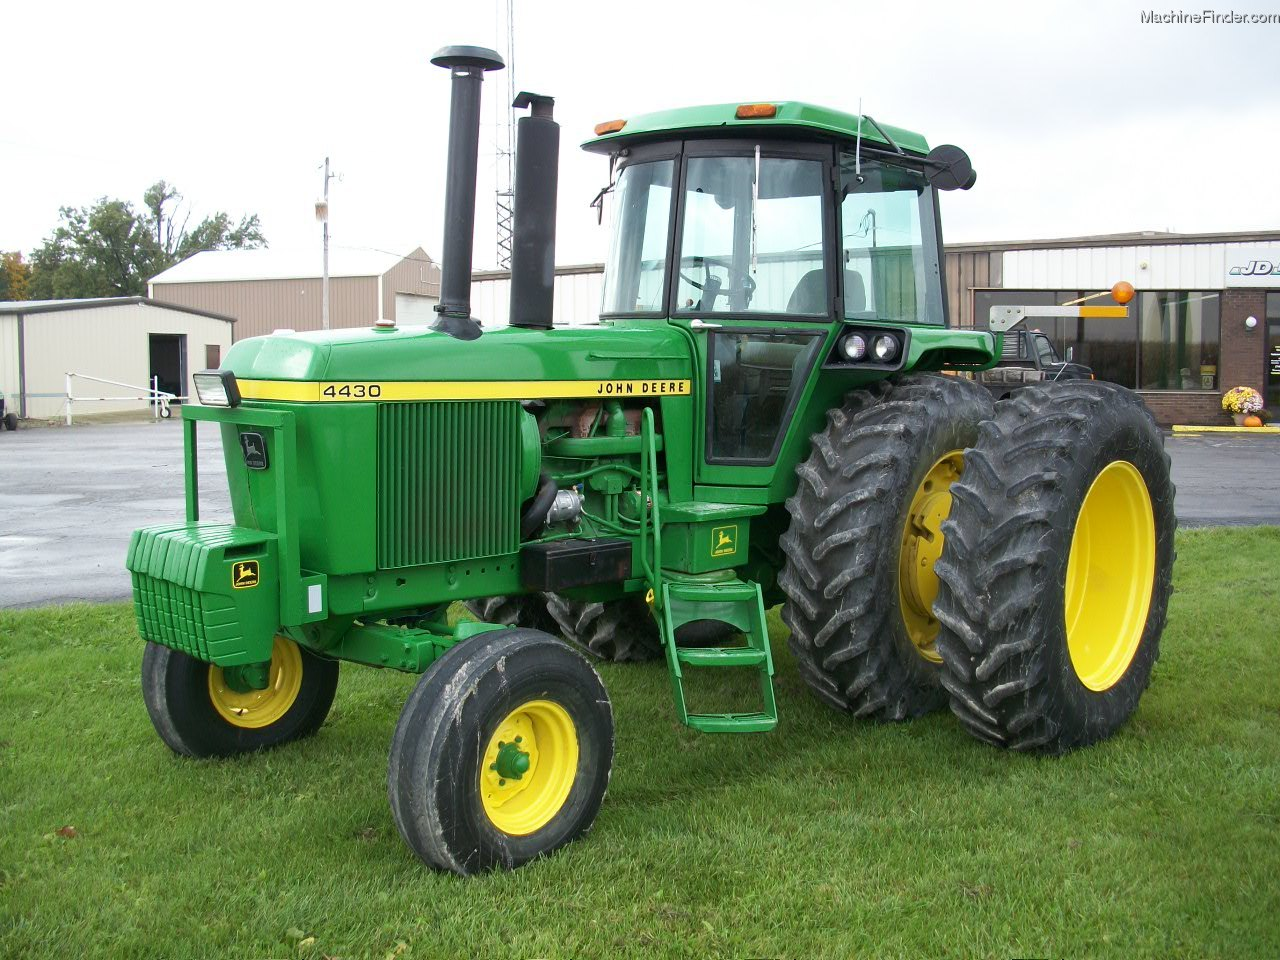 Tractor Front Lights : John deere tractors row crop hp